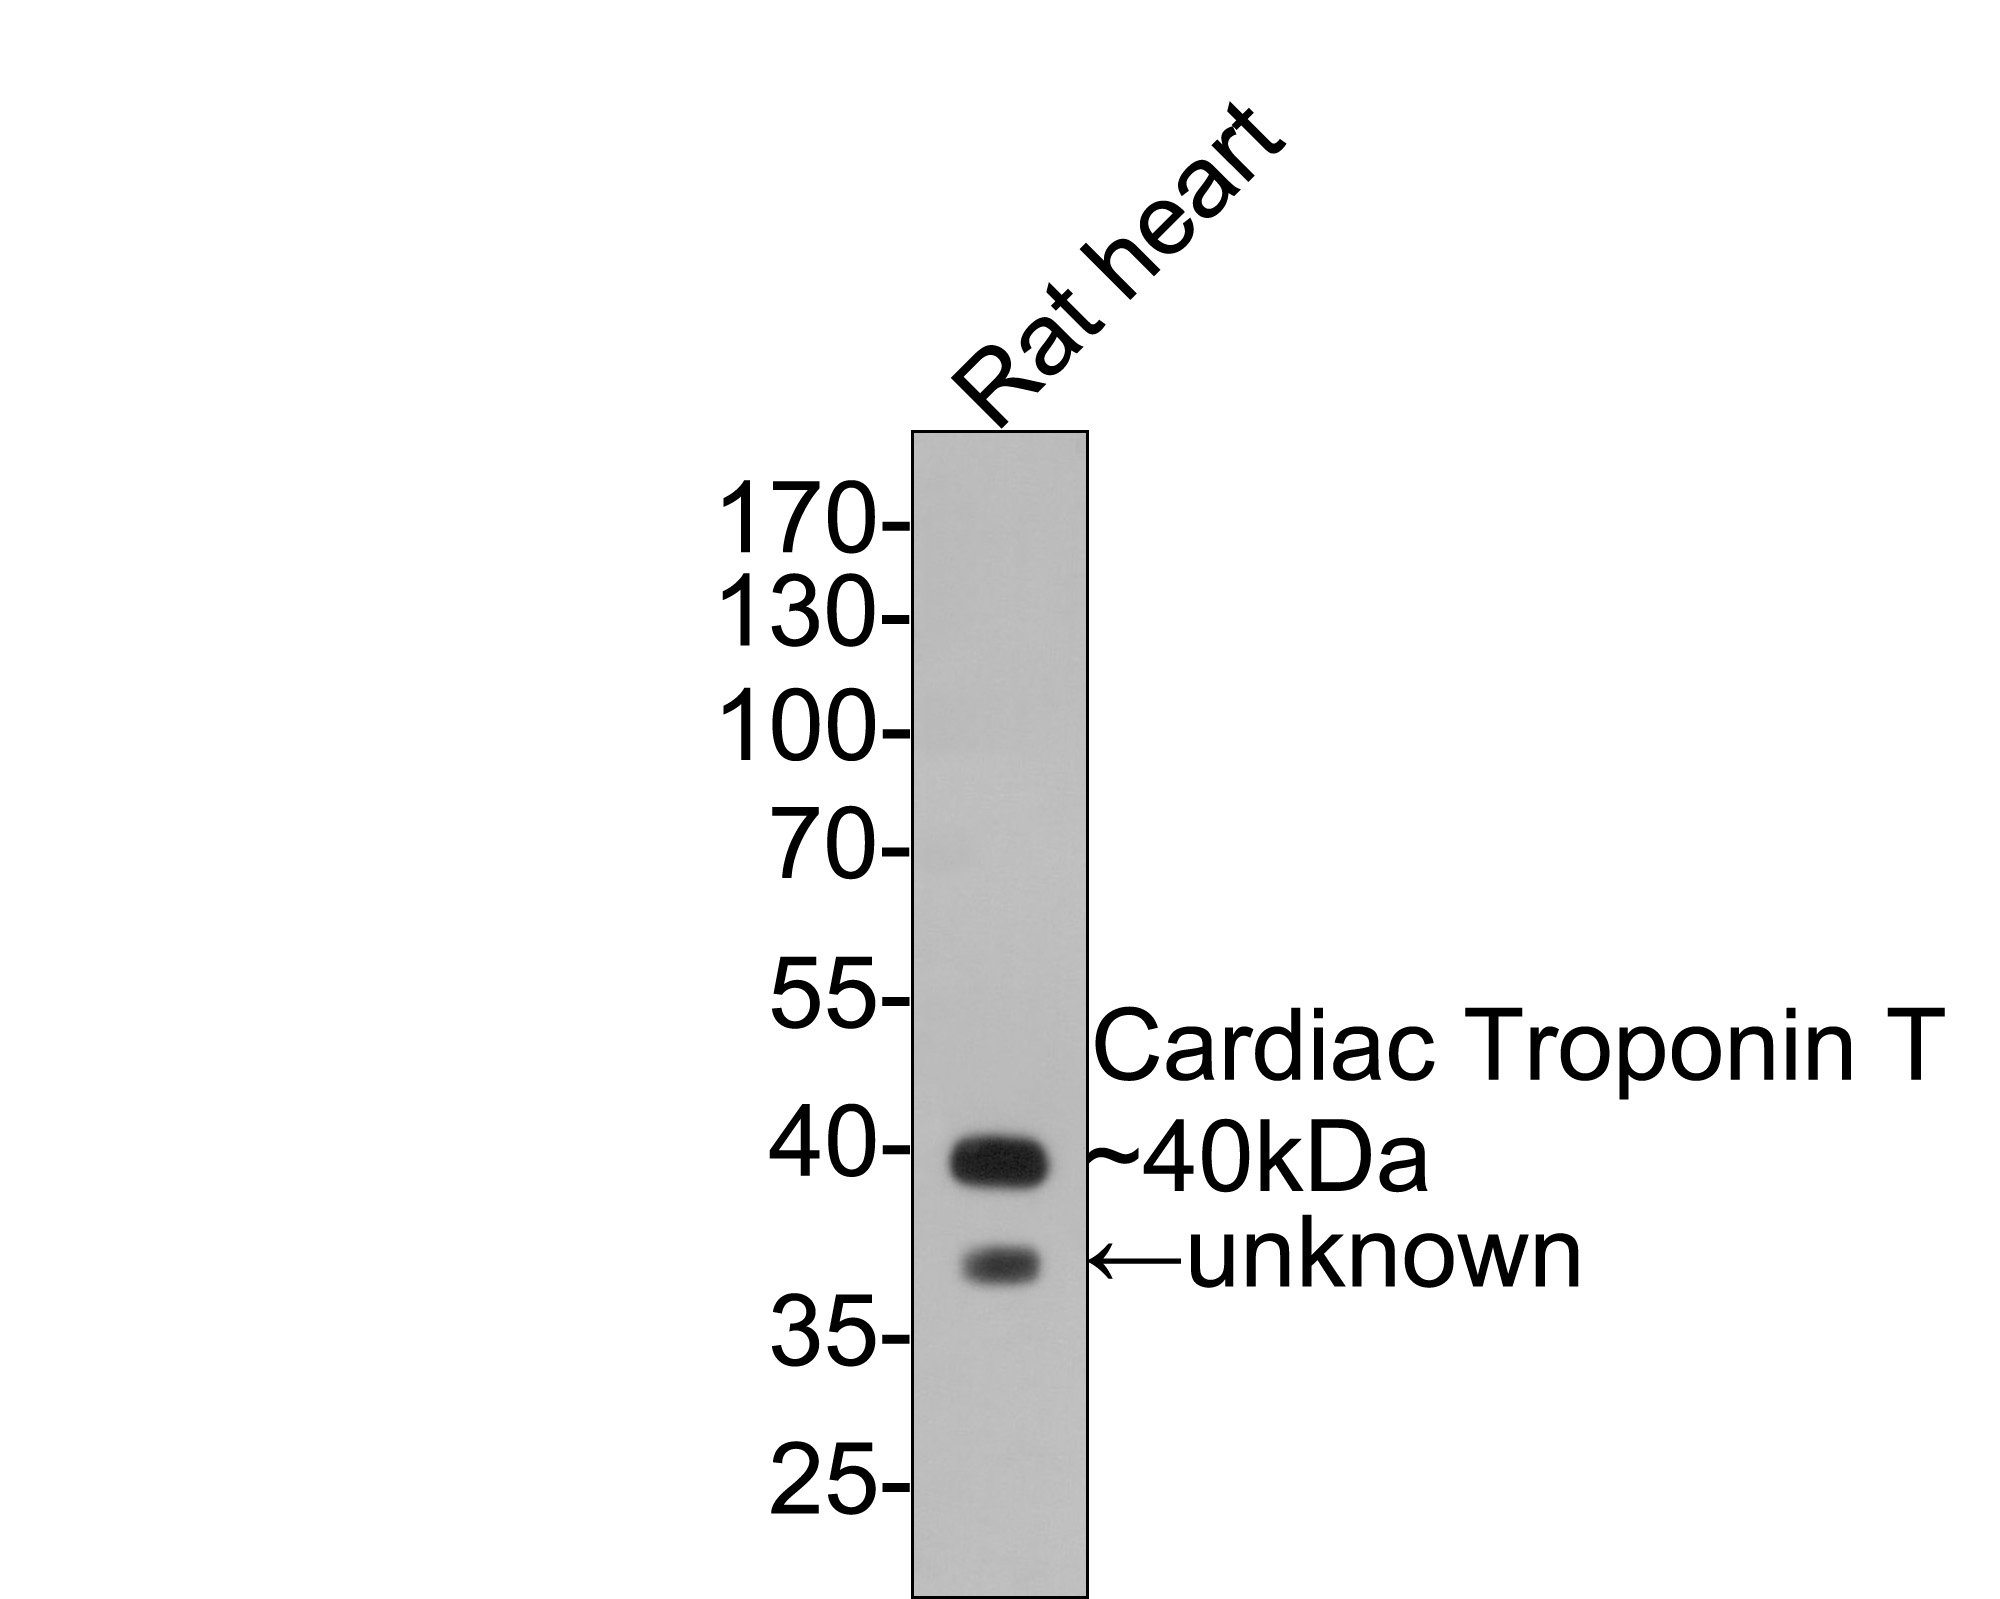 Immunohistochemical analysis of paraffin-embedded mouse heart tissue using anti-Cardiac Troponin T antibody. The section was pre-treated using heat mediated antigen retrieval with Tris-EDTA buffer (pH 8.0-8.4) for 20 minutes.The tissues were blocked in 5% BSA for 30 minutes at room temperature, washed with ddH2O and PBS, and then probed with the primary antibody (ET1610-51, 1/50) for 30 minutes at room temperature. The detection was performed using an HRP conjugated compact polymer system. DAB was used as the chromogen. Tissues were counterstained with hematoxylin and mounted with DPX.